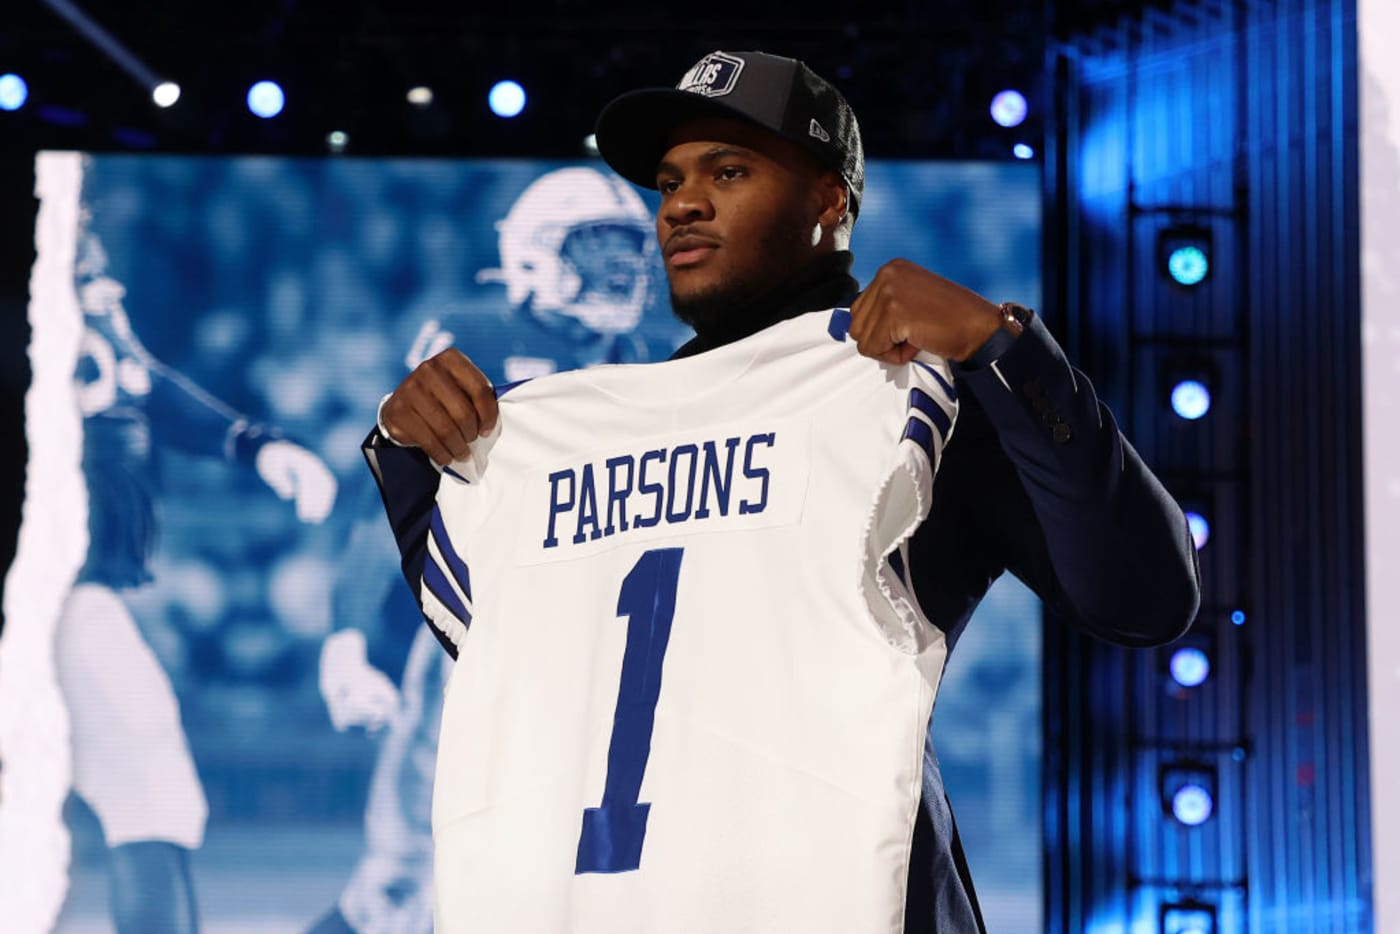 Micah Parsons NFL Draft Jersey 2021